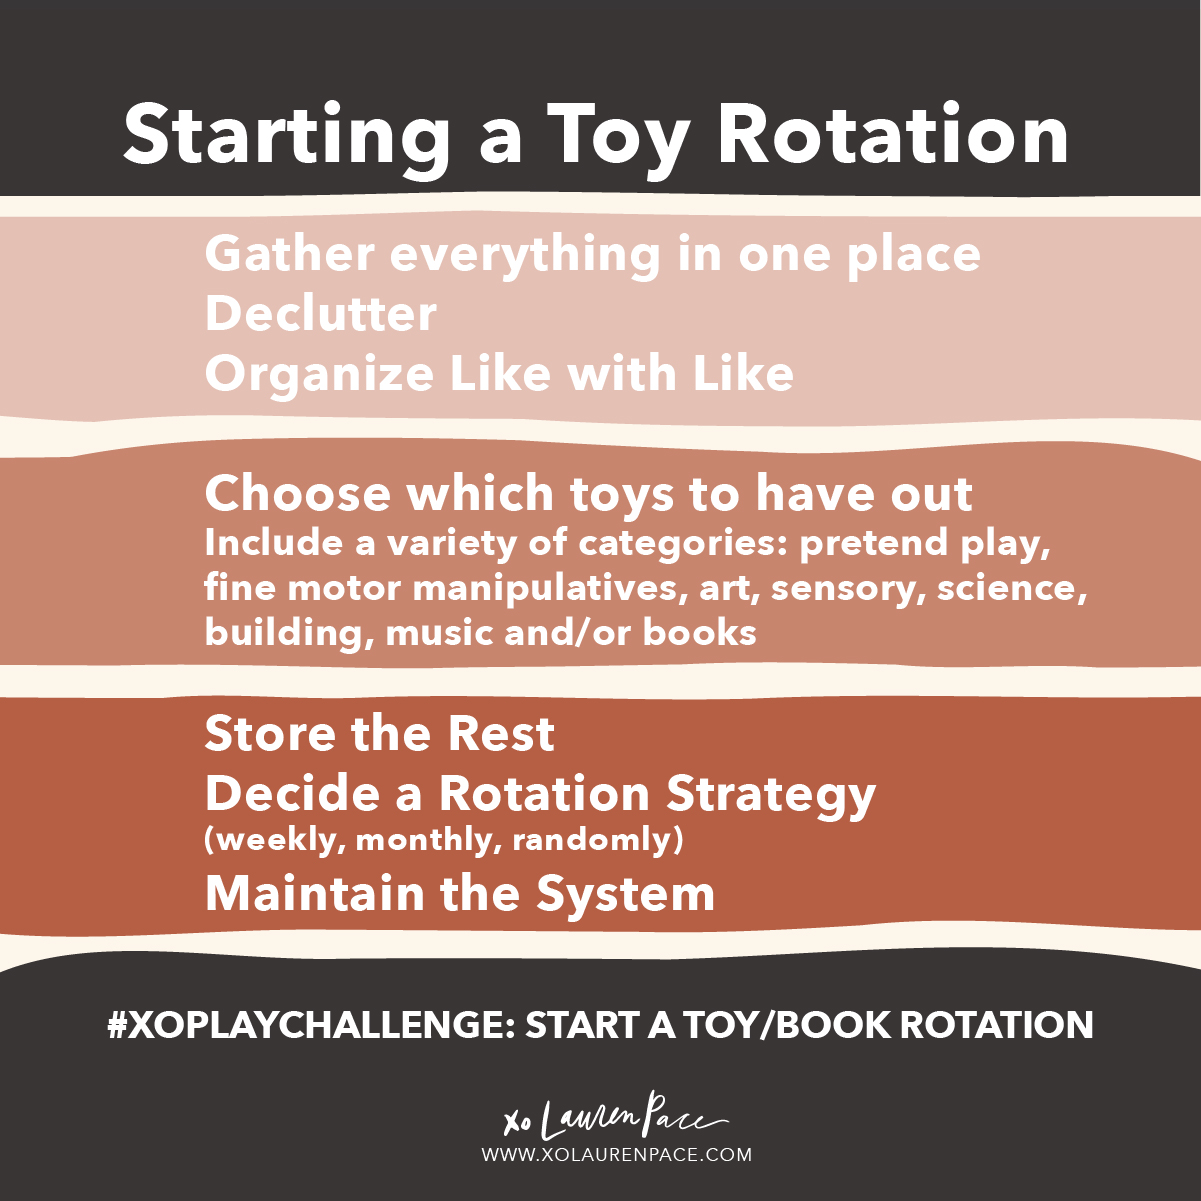 When you use a toy rotation system, instead of giving them free access to all toys, your children will do MORE with less. They will find creative ways to use the old toys in new games. You won't have to clean up toys all day long. Your home will feel more spacious and organized without a lot of toys around. Toy rotation is beneficial to EVERYONE. I've done it from day one of parenthood. And my home is almost always tidy (minus dishes and laundry, but dish rotation doesn't seem to work the same).  You don't have to complete your toy rotation today, and if you already do a toy rotation... throw up some labels, purge, spruce it up, dust it off. Let's make this challenge count!   🚂 Rotating toys works because with less out, they are not overwhelmed... they will play with certain toys longer  🎡 They will get re-excited about toys that they played with a few weeks before each time your rotate  🎈Your space will stay organized and be easier to manage (for you and kids)  🤖more independent play